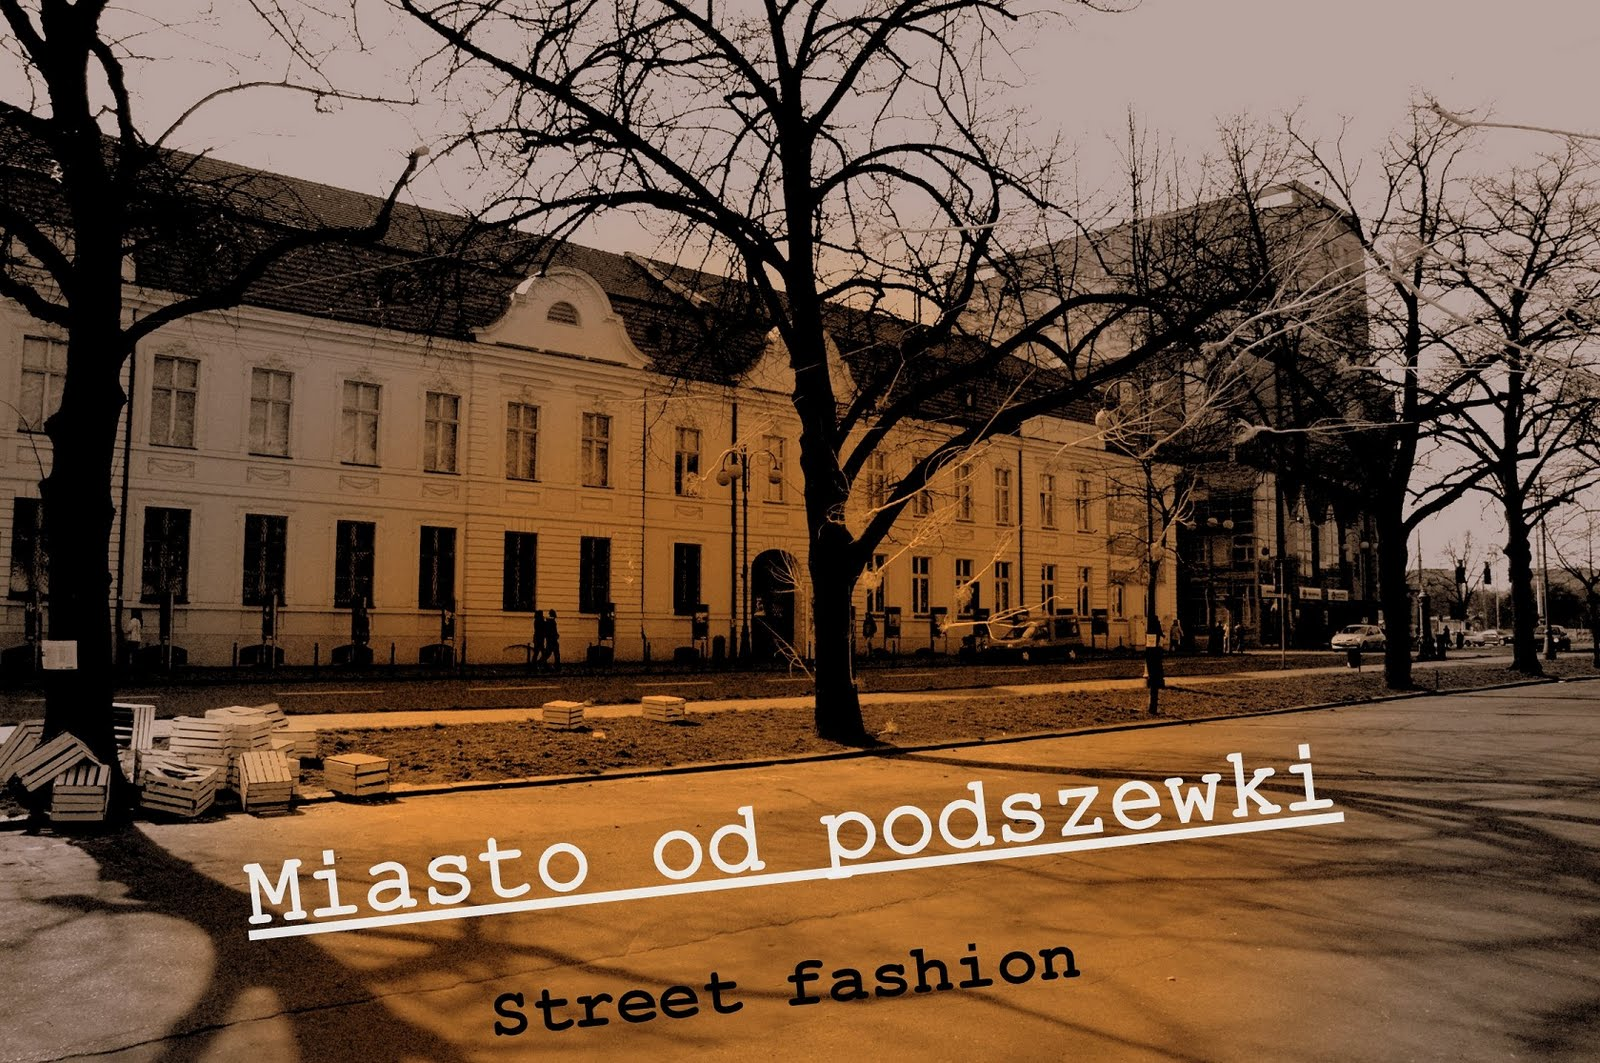 Miasto od podszewki